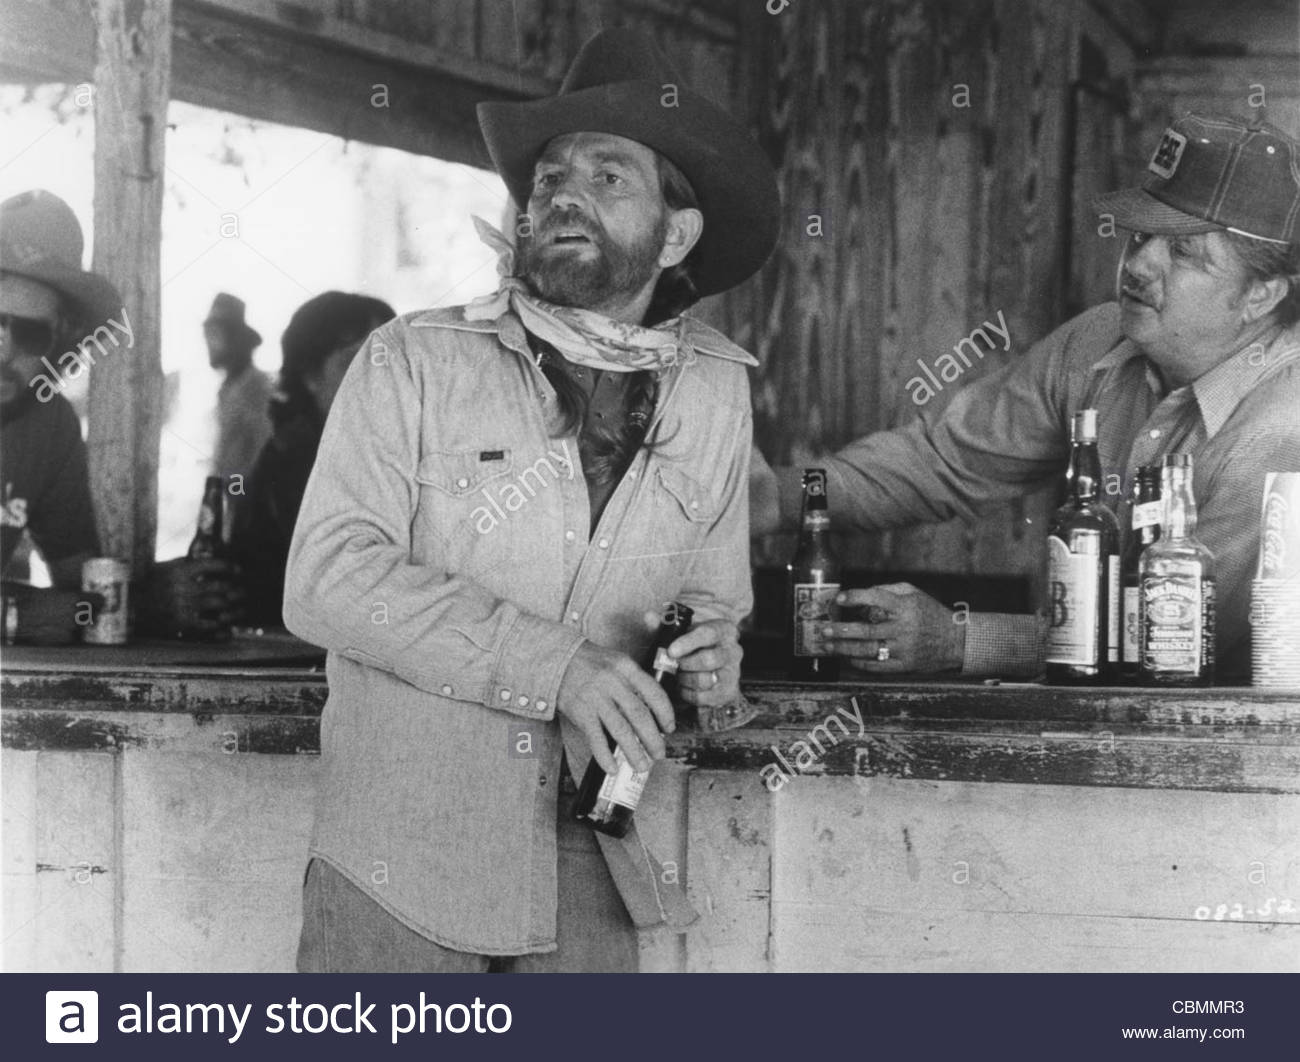 Willie Nelson in the Warner Brothers film 'Honeysuckle Rose', directed by Jerry Schatzberg, 1980. Photo - Stock Image